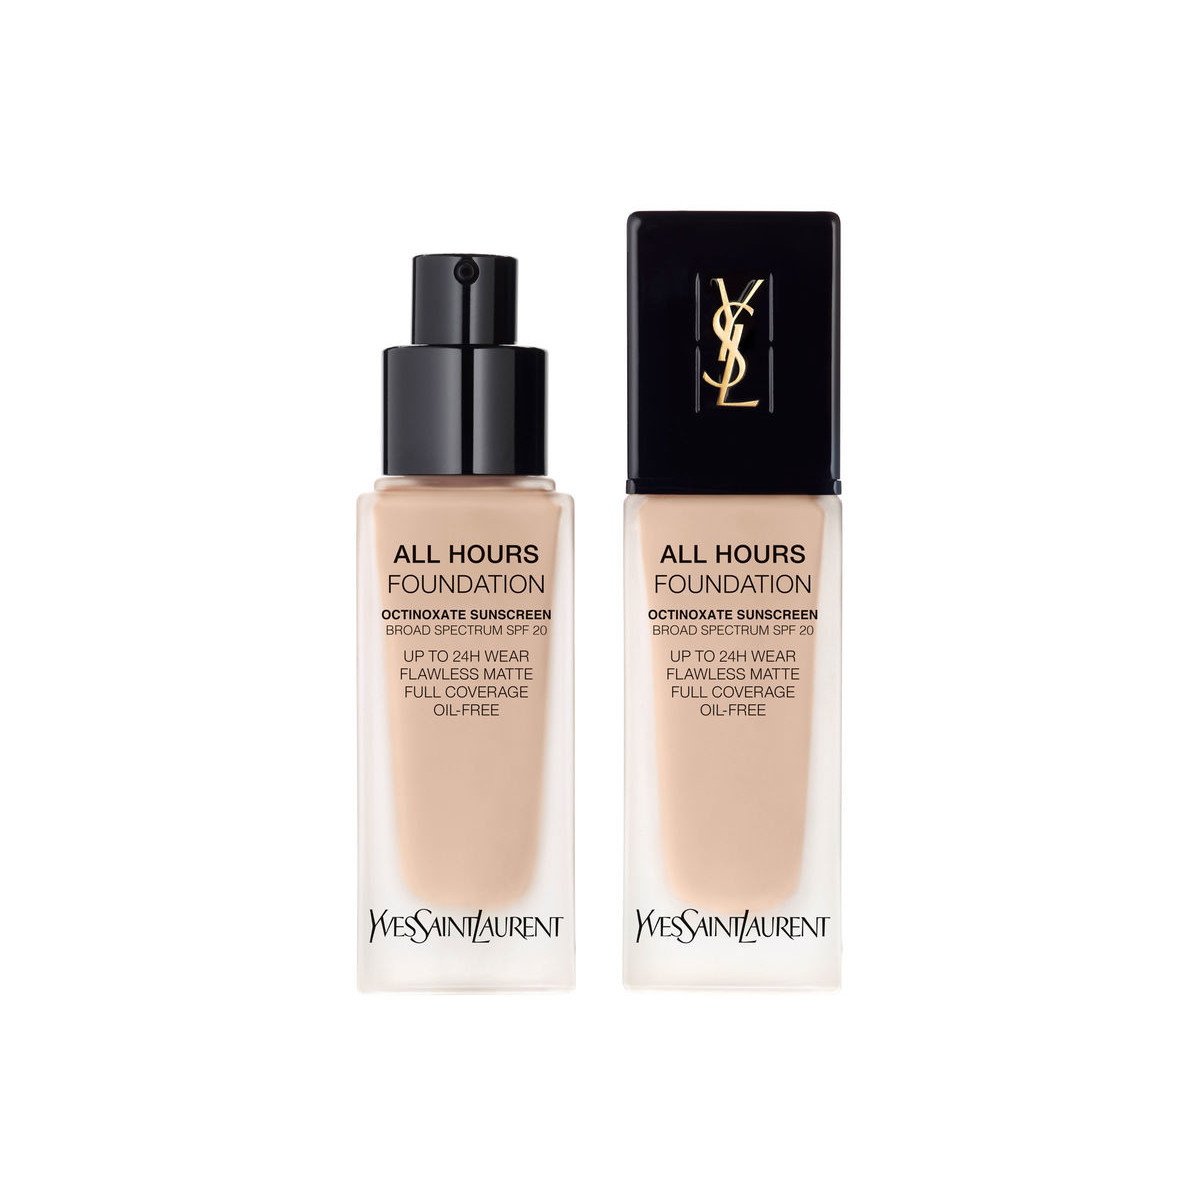 Yves Saint Laurent All Hours Foundation photo